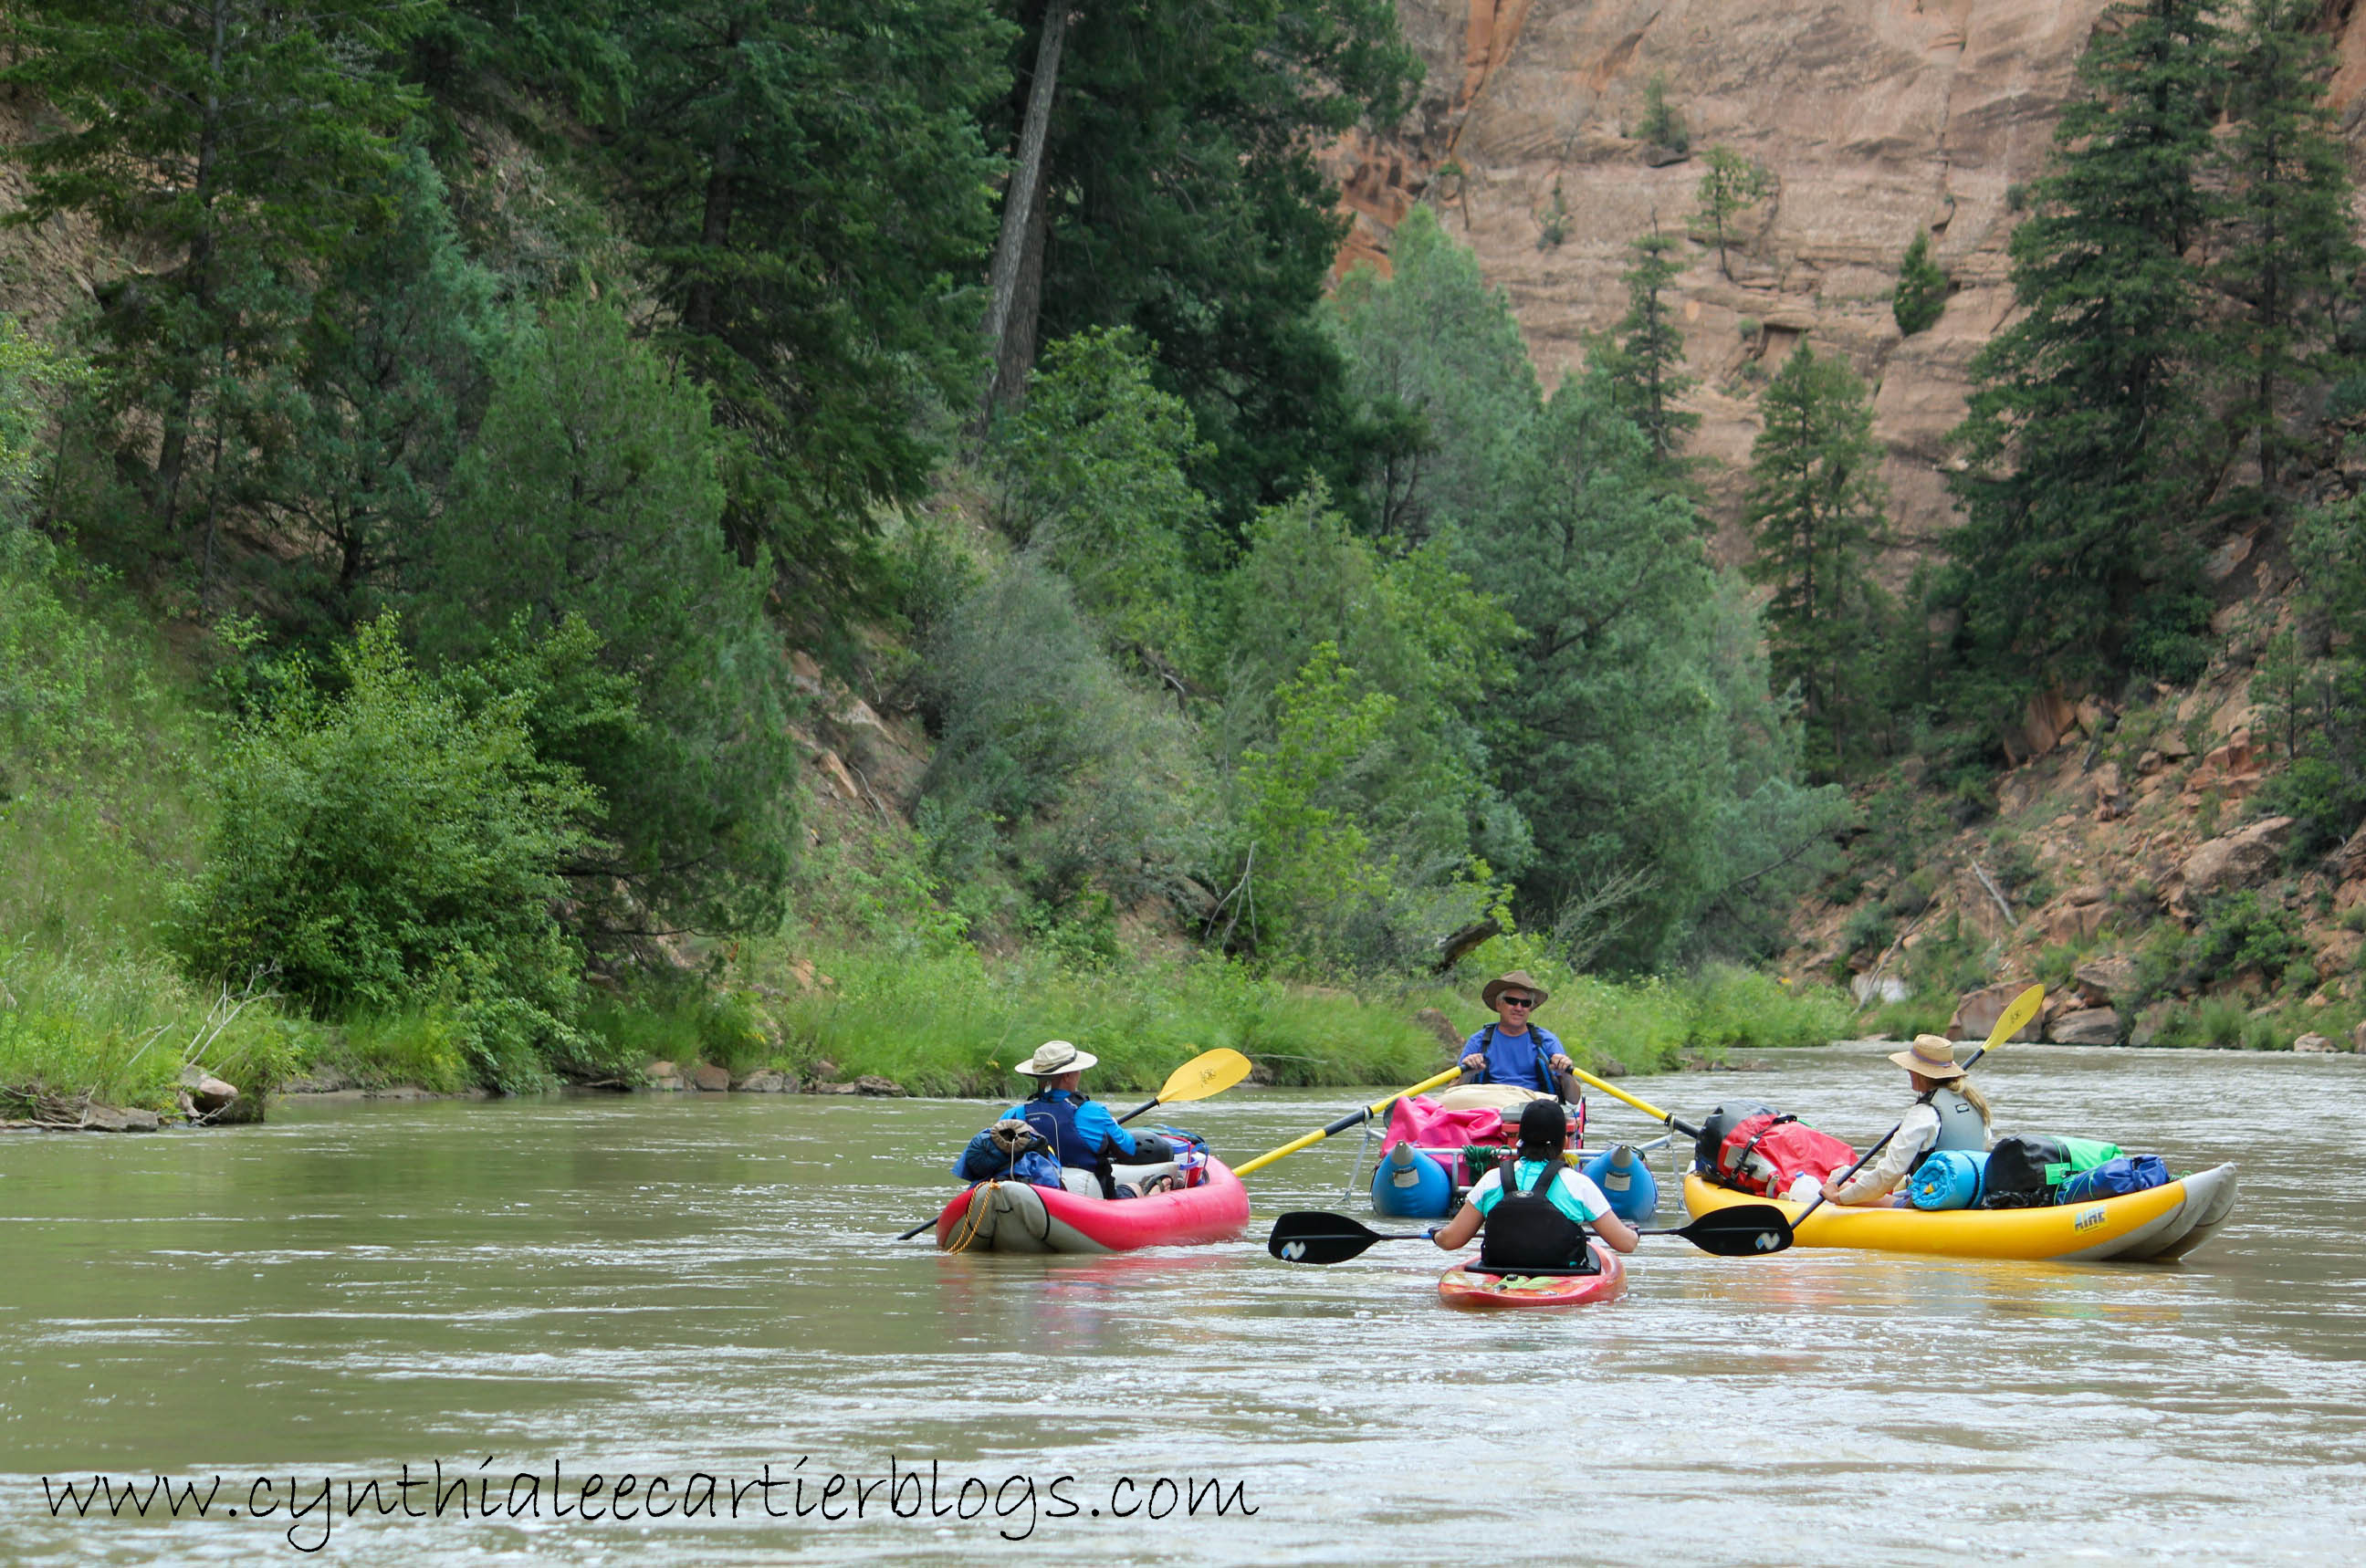 4 River Rafters on the Rio Chama